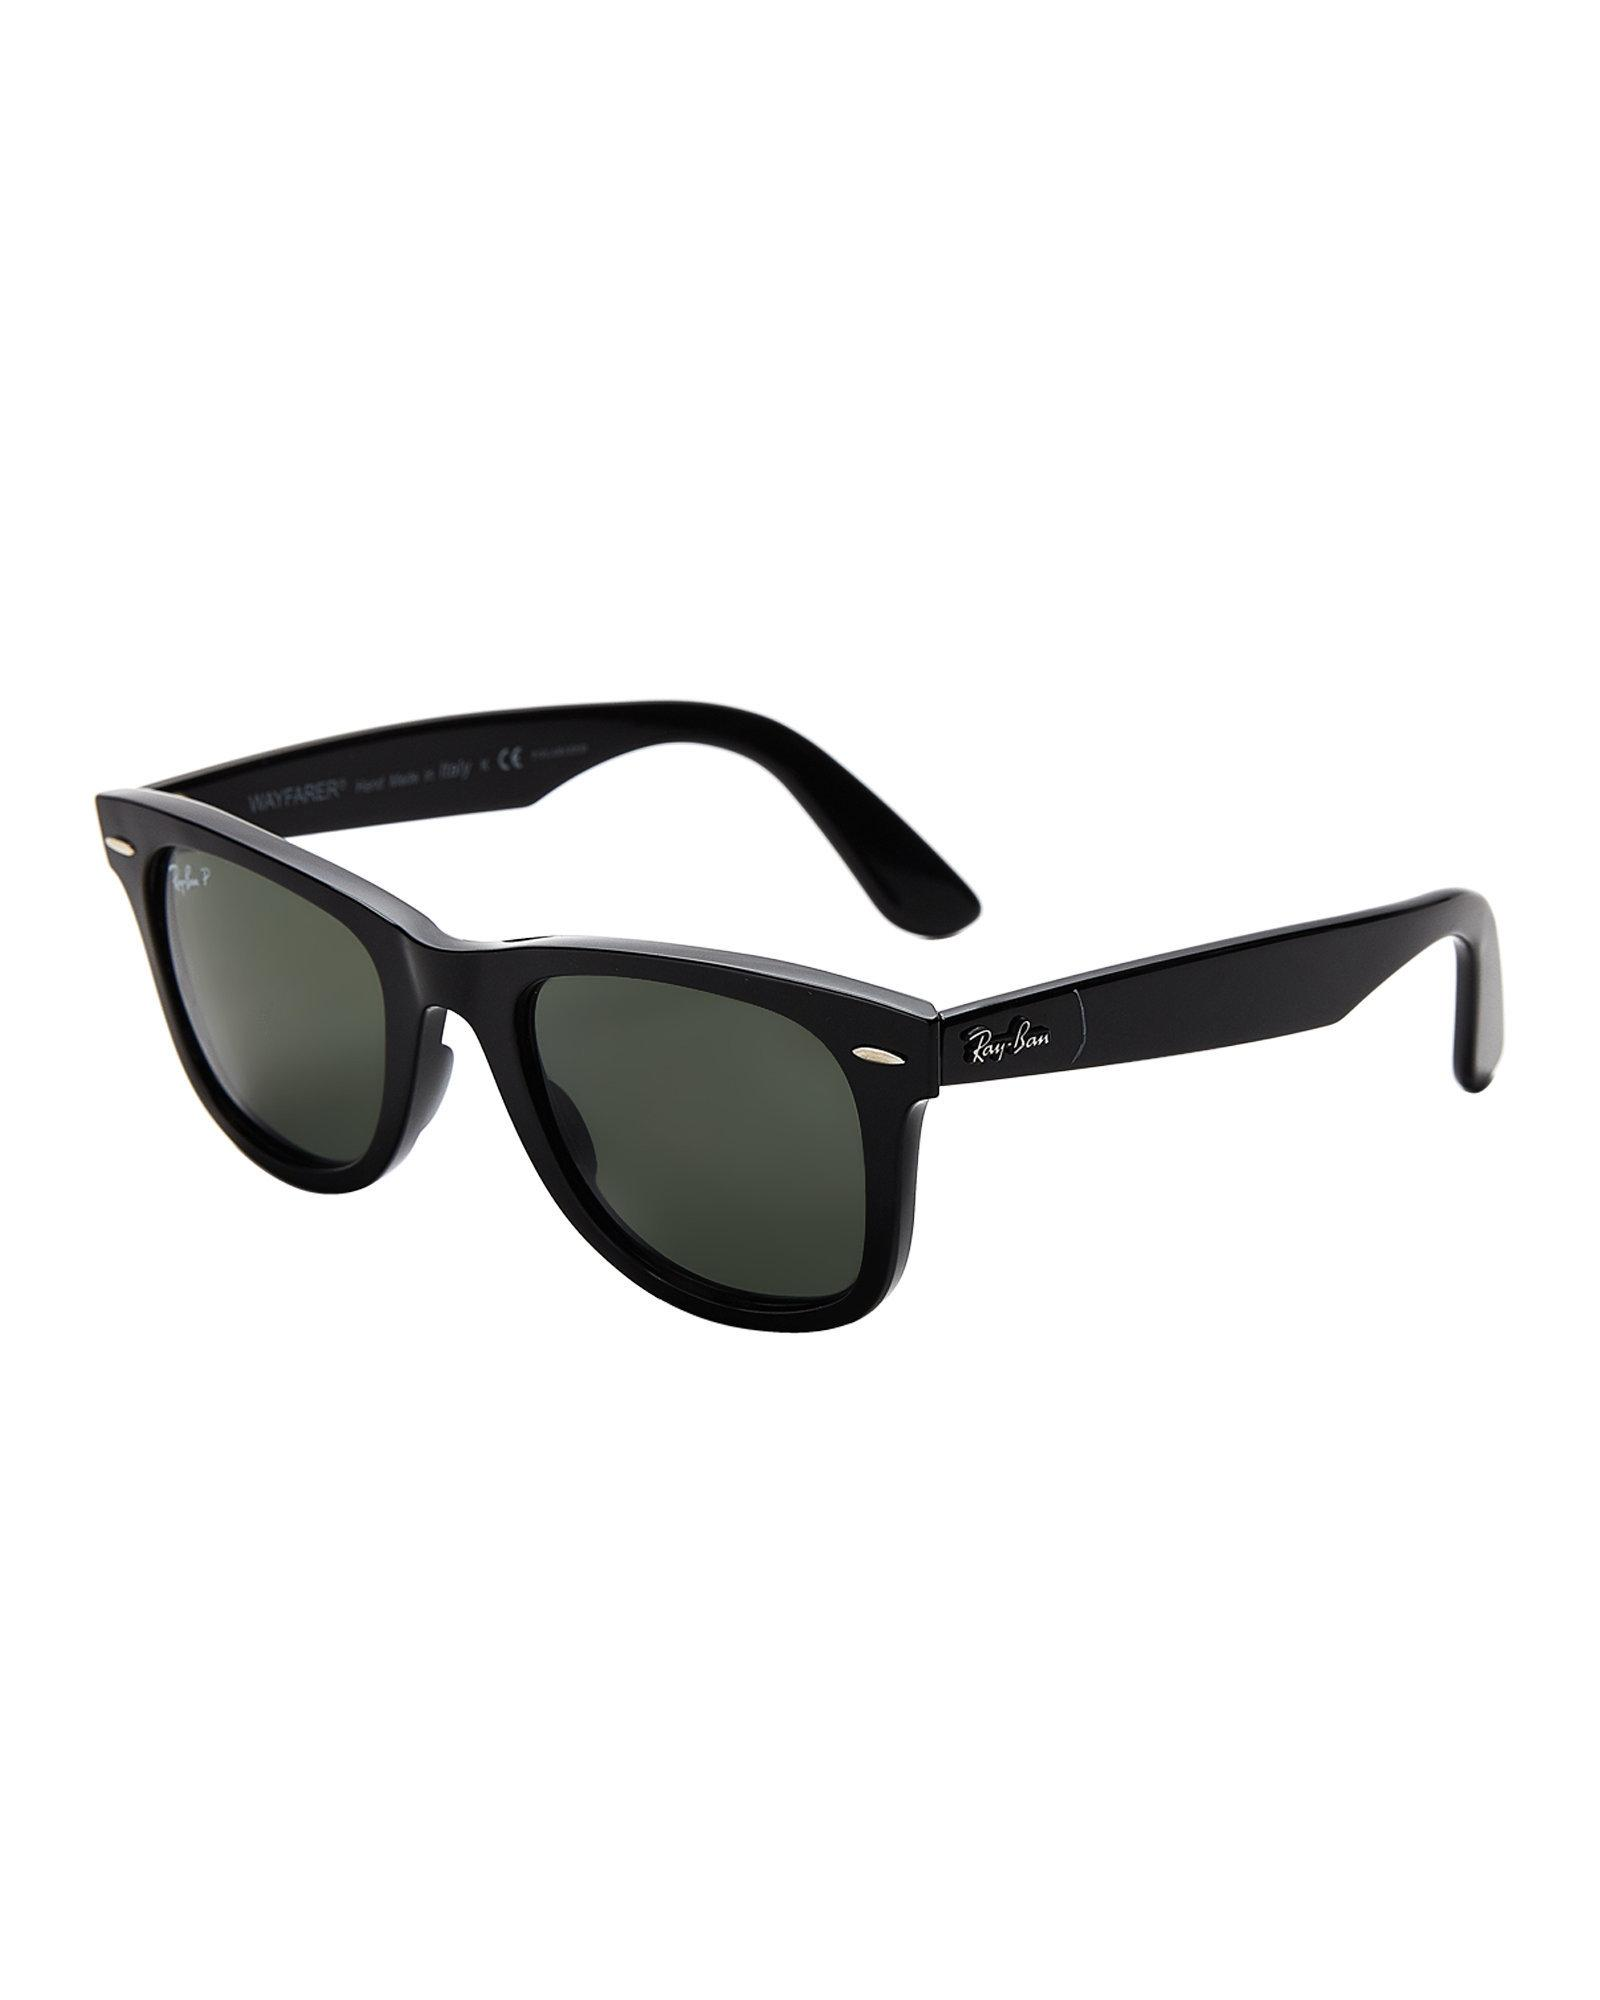 cb1479b28d1 Lyst - Ray-Ban Rb4340 Black Polarized Wayfarer Sunglasses in Black